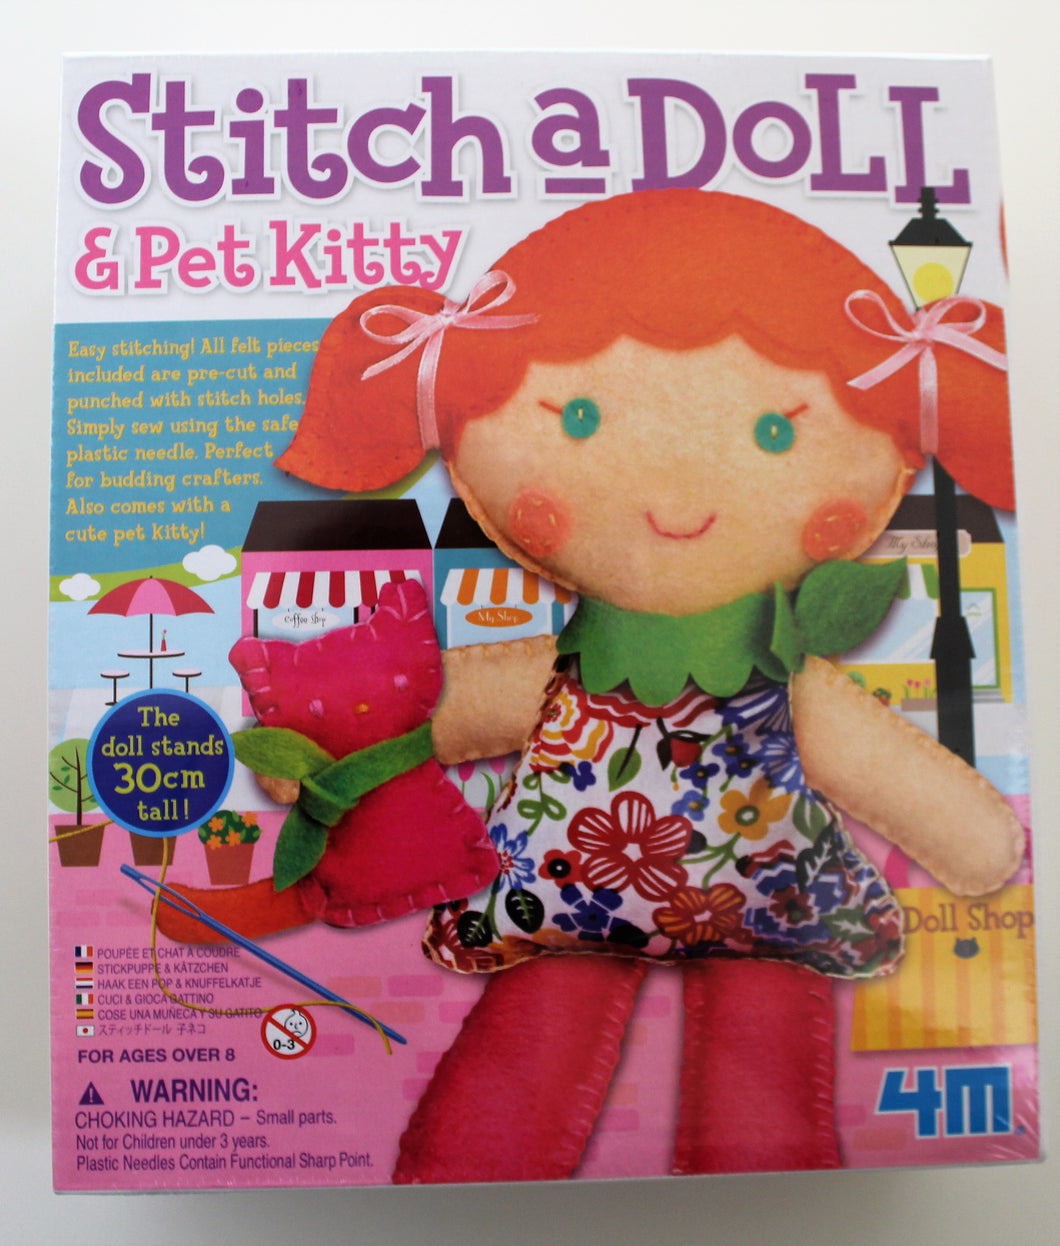 make your wee dolly and kitten, lovely craft activity for friends and beautiful gift for little crafters